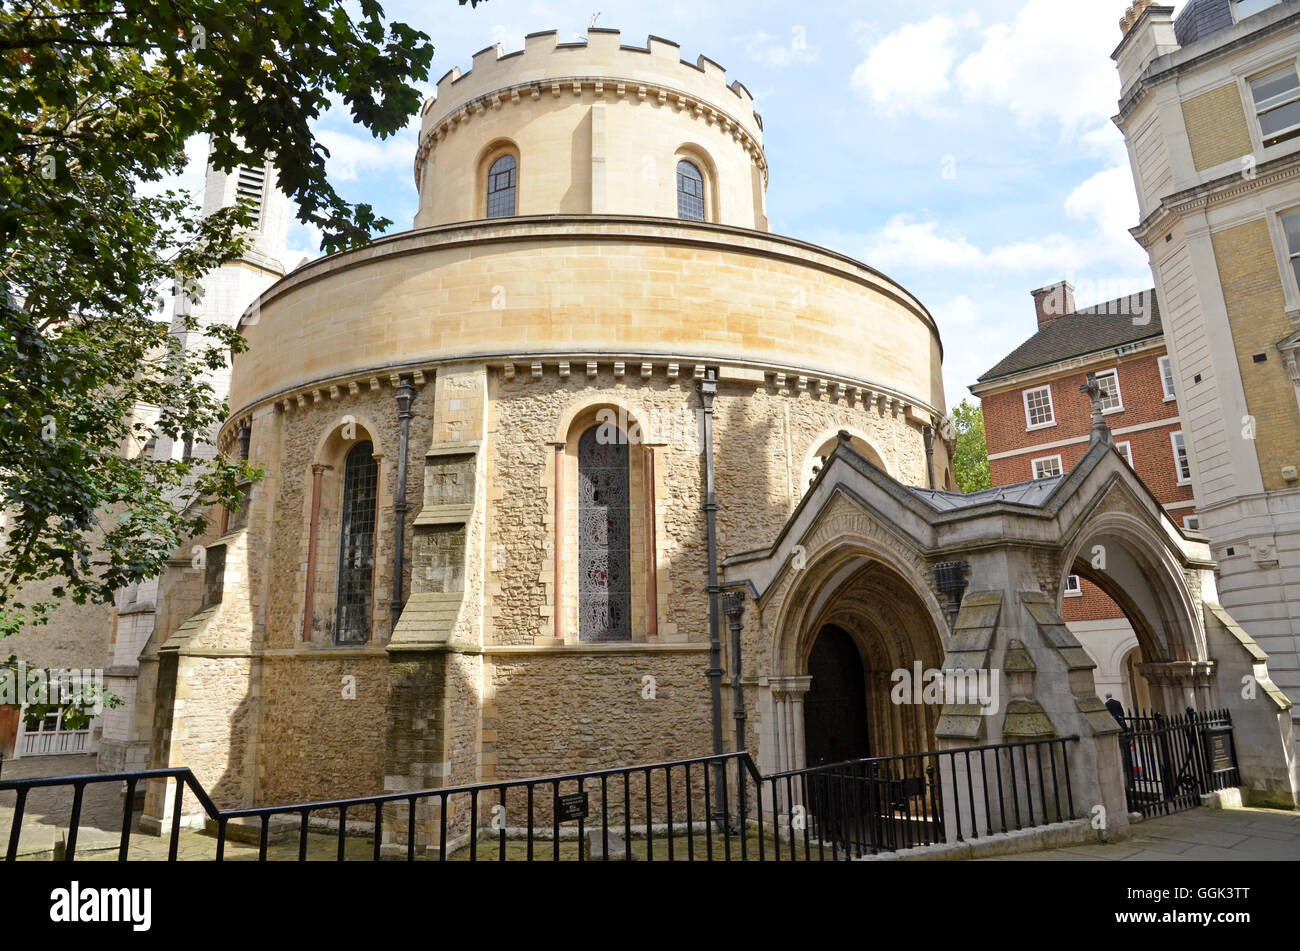 Temple Church in one of the four Inns of Court in Central London - Stock Image